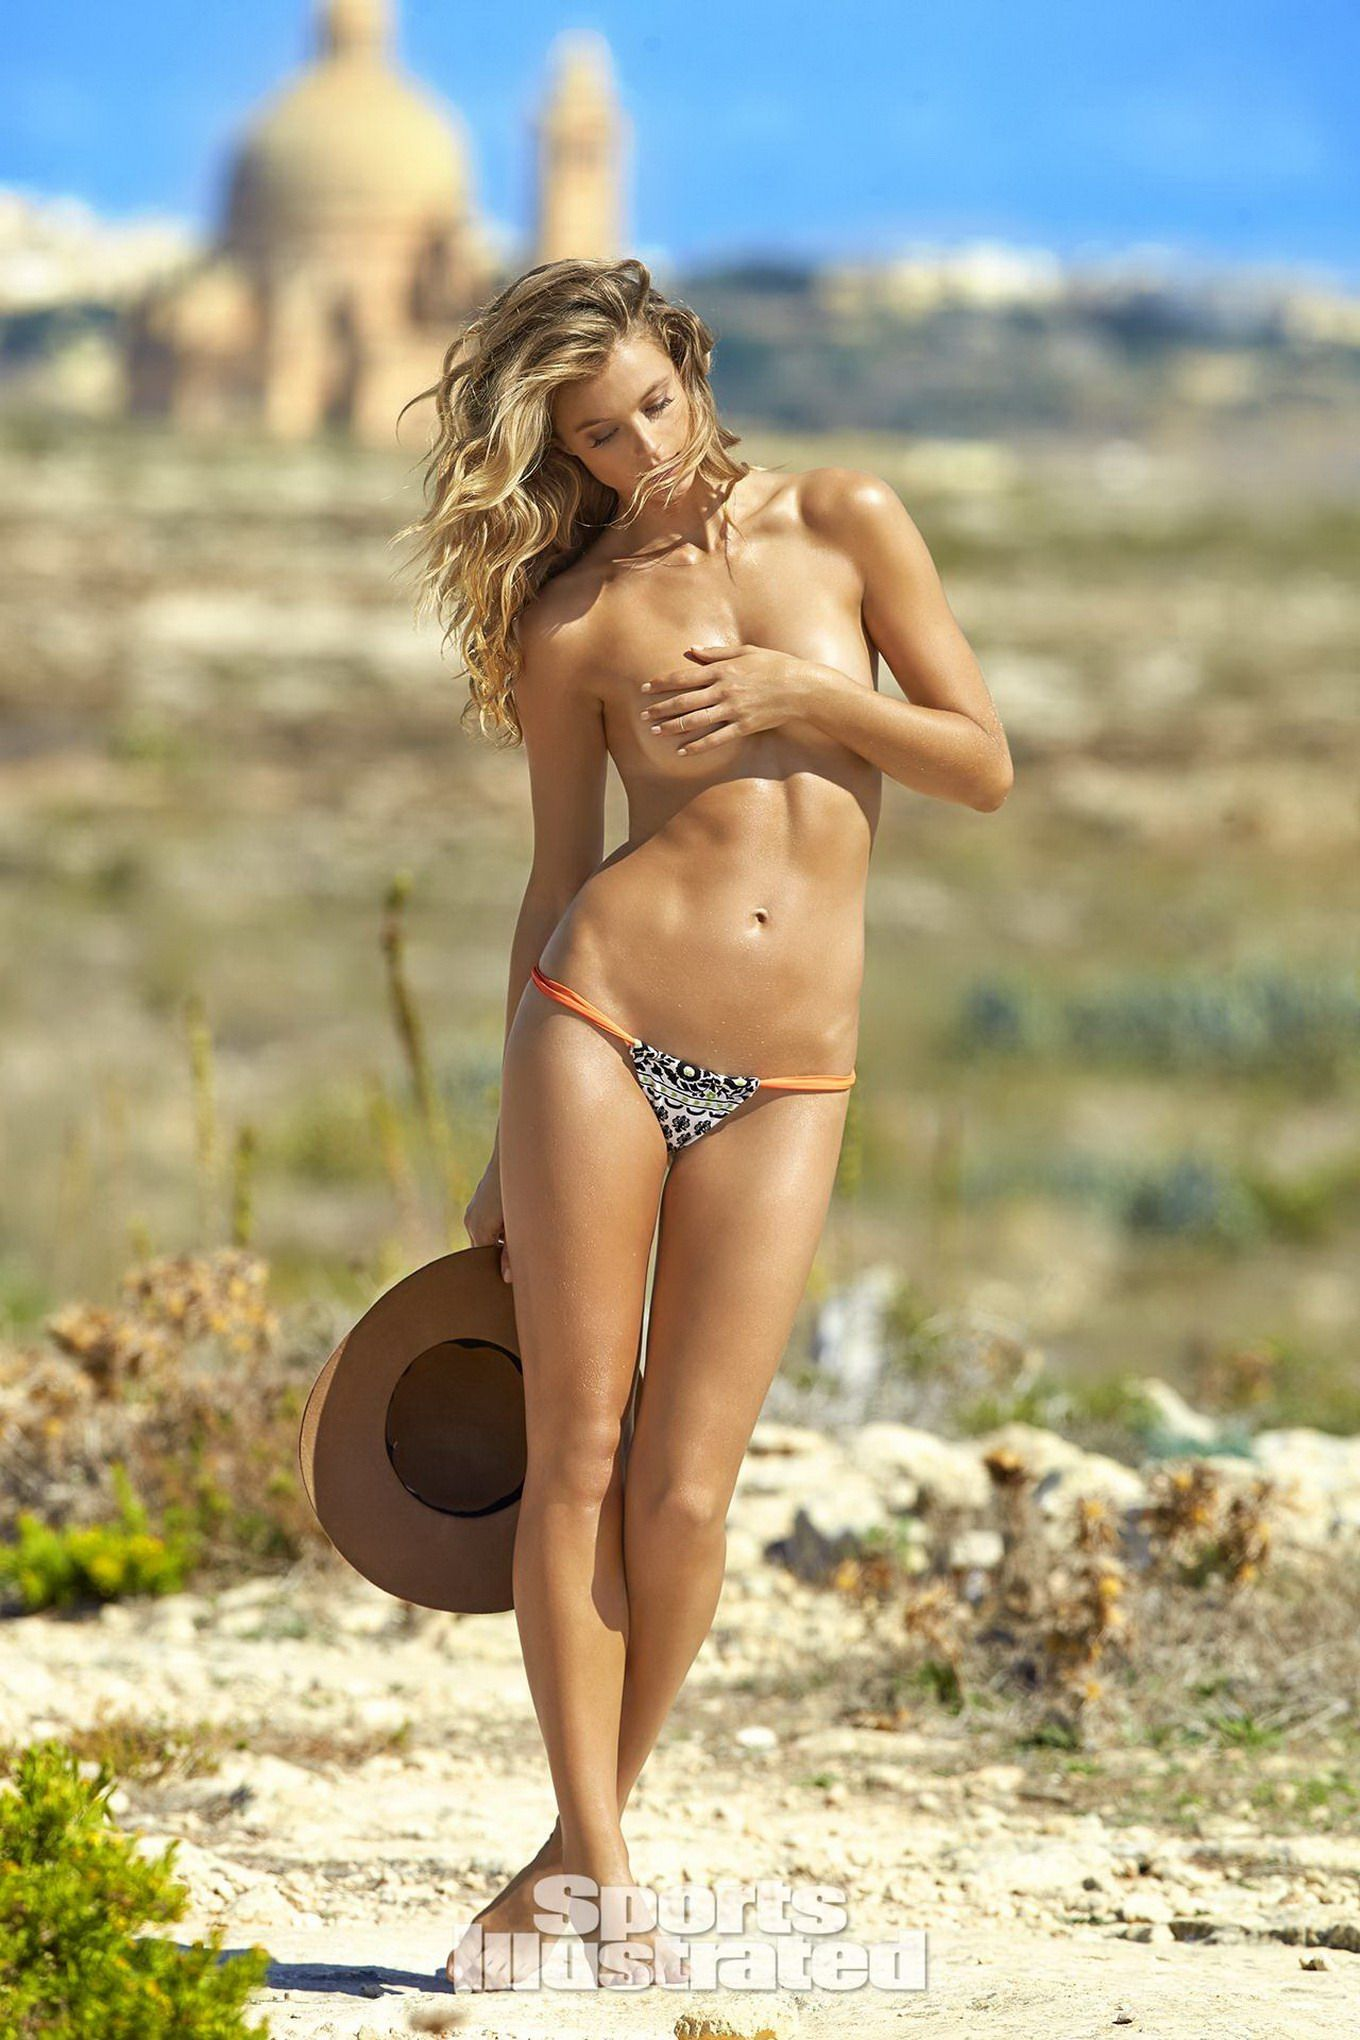 kate bock showing off her boobs and ass for 2016 sports illustrated